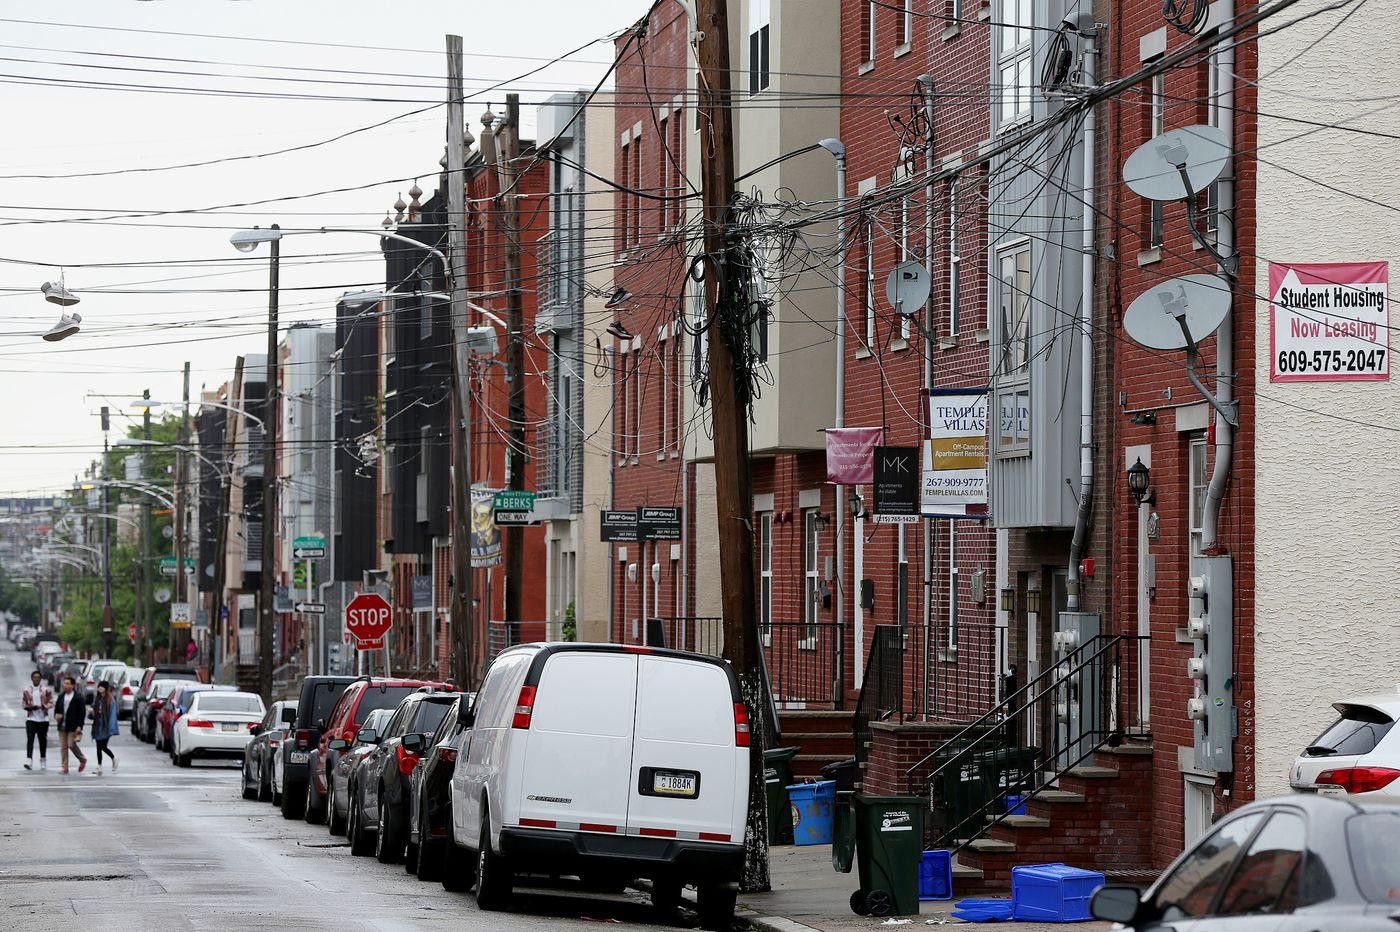 Philly postpones property reassessment and will leave values the same until 2023 due to coronavirus